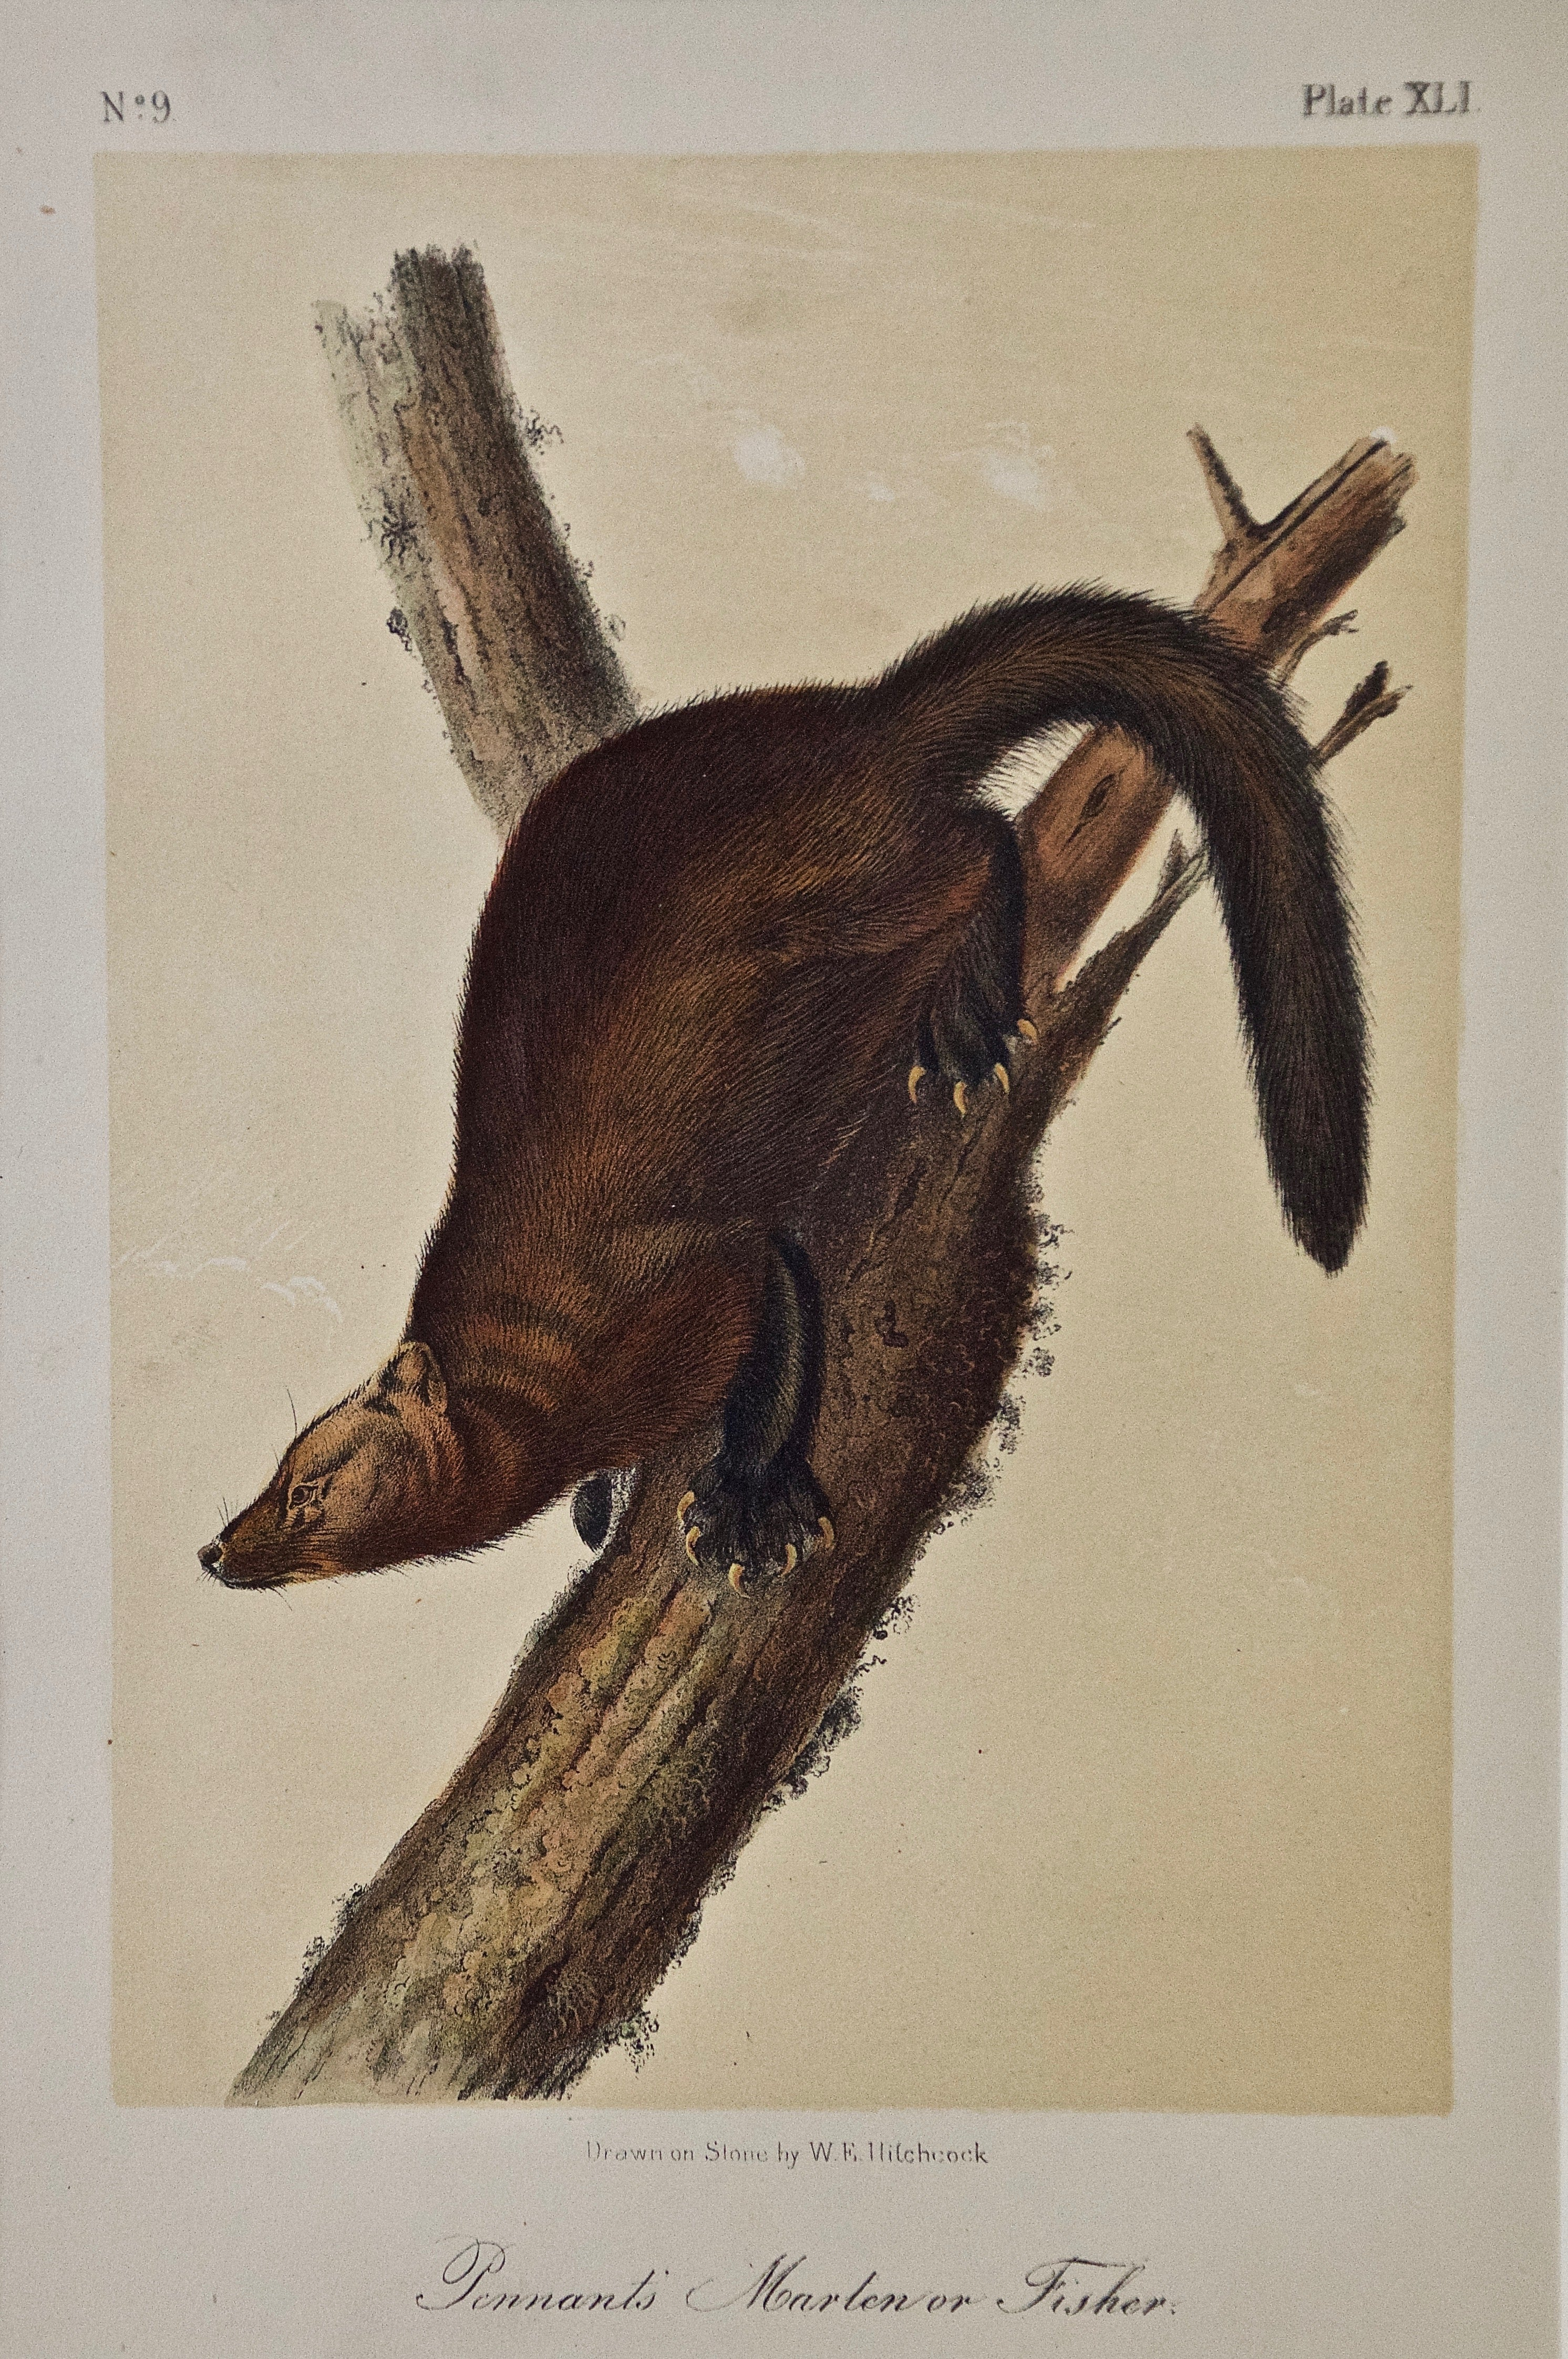 """Original Audubon Hand Colored Lithograph of a """"Pennant's Marten or Fisher"""""""